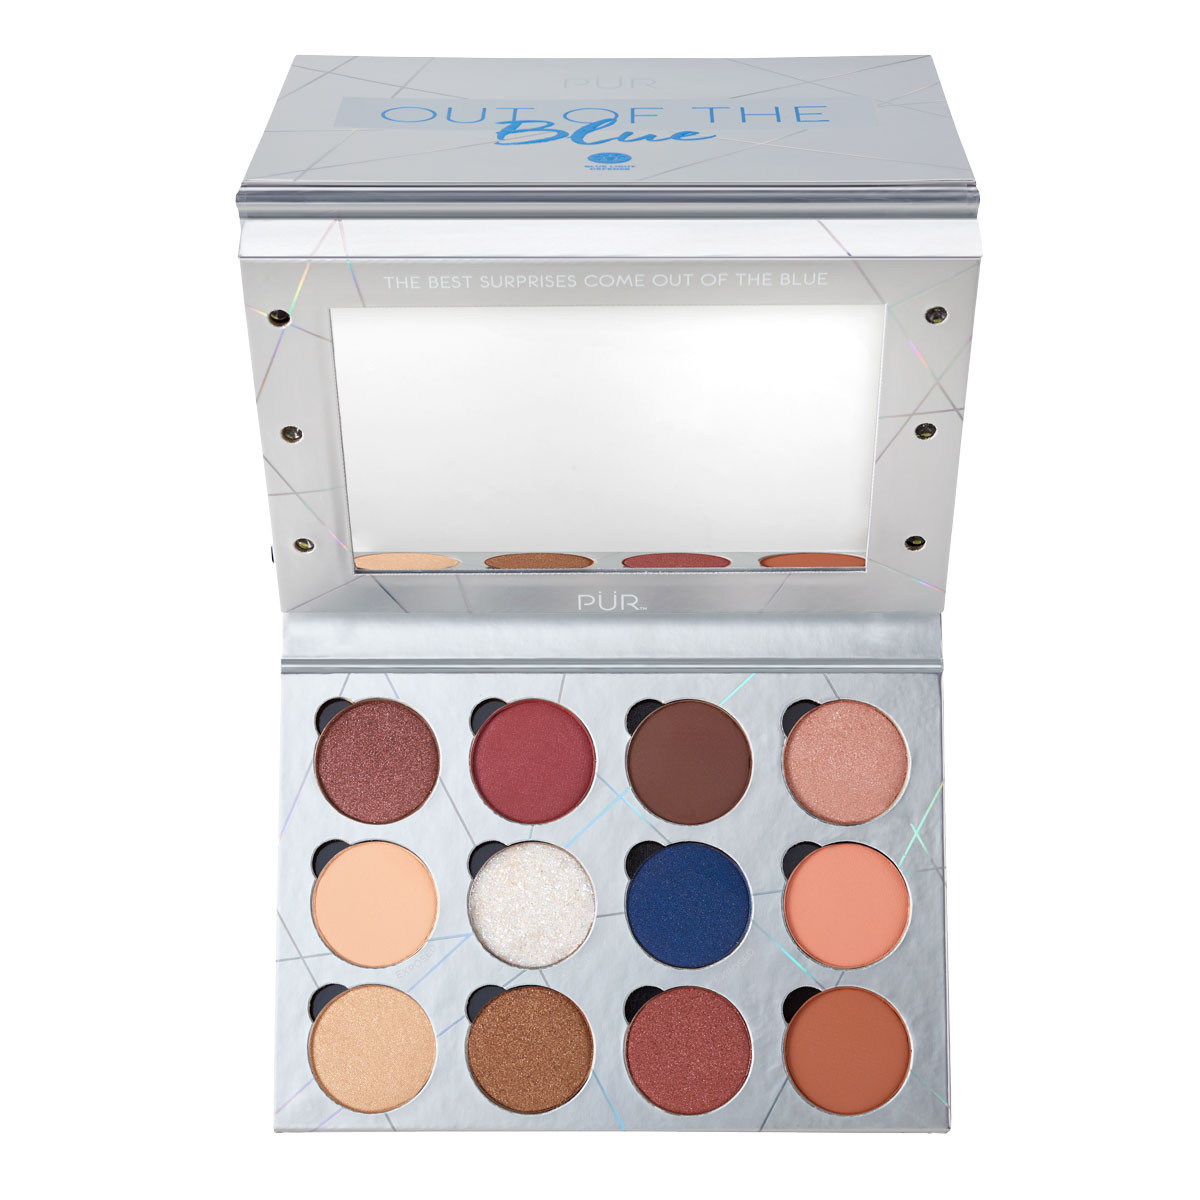 www.purcosmetics.com - Out of the Blue Light Up Vanity Eyeshadow Palette